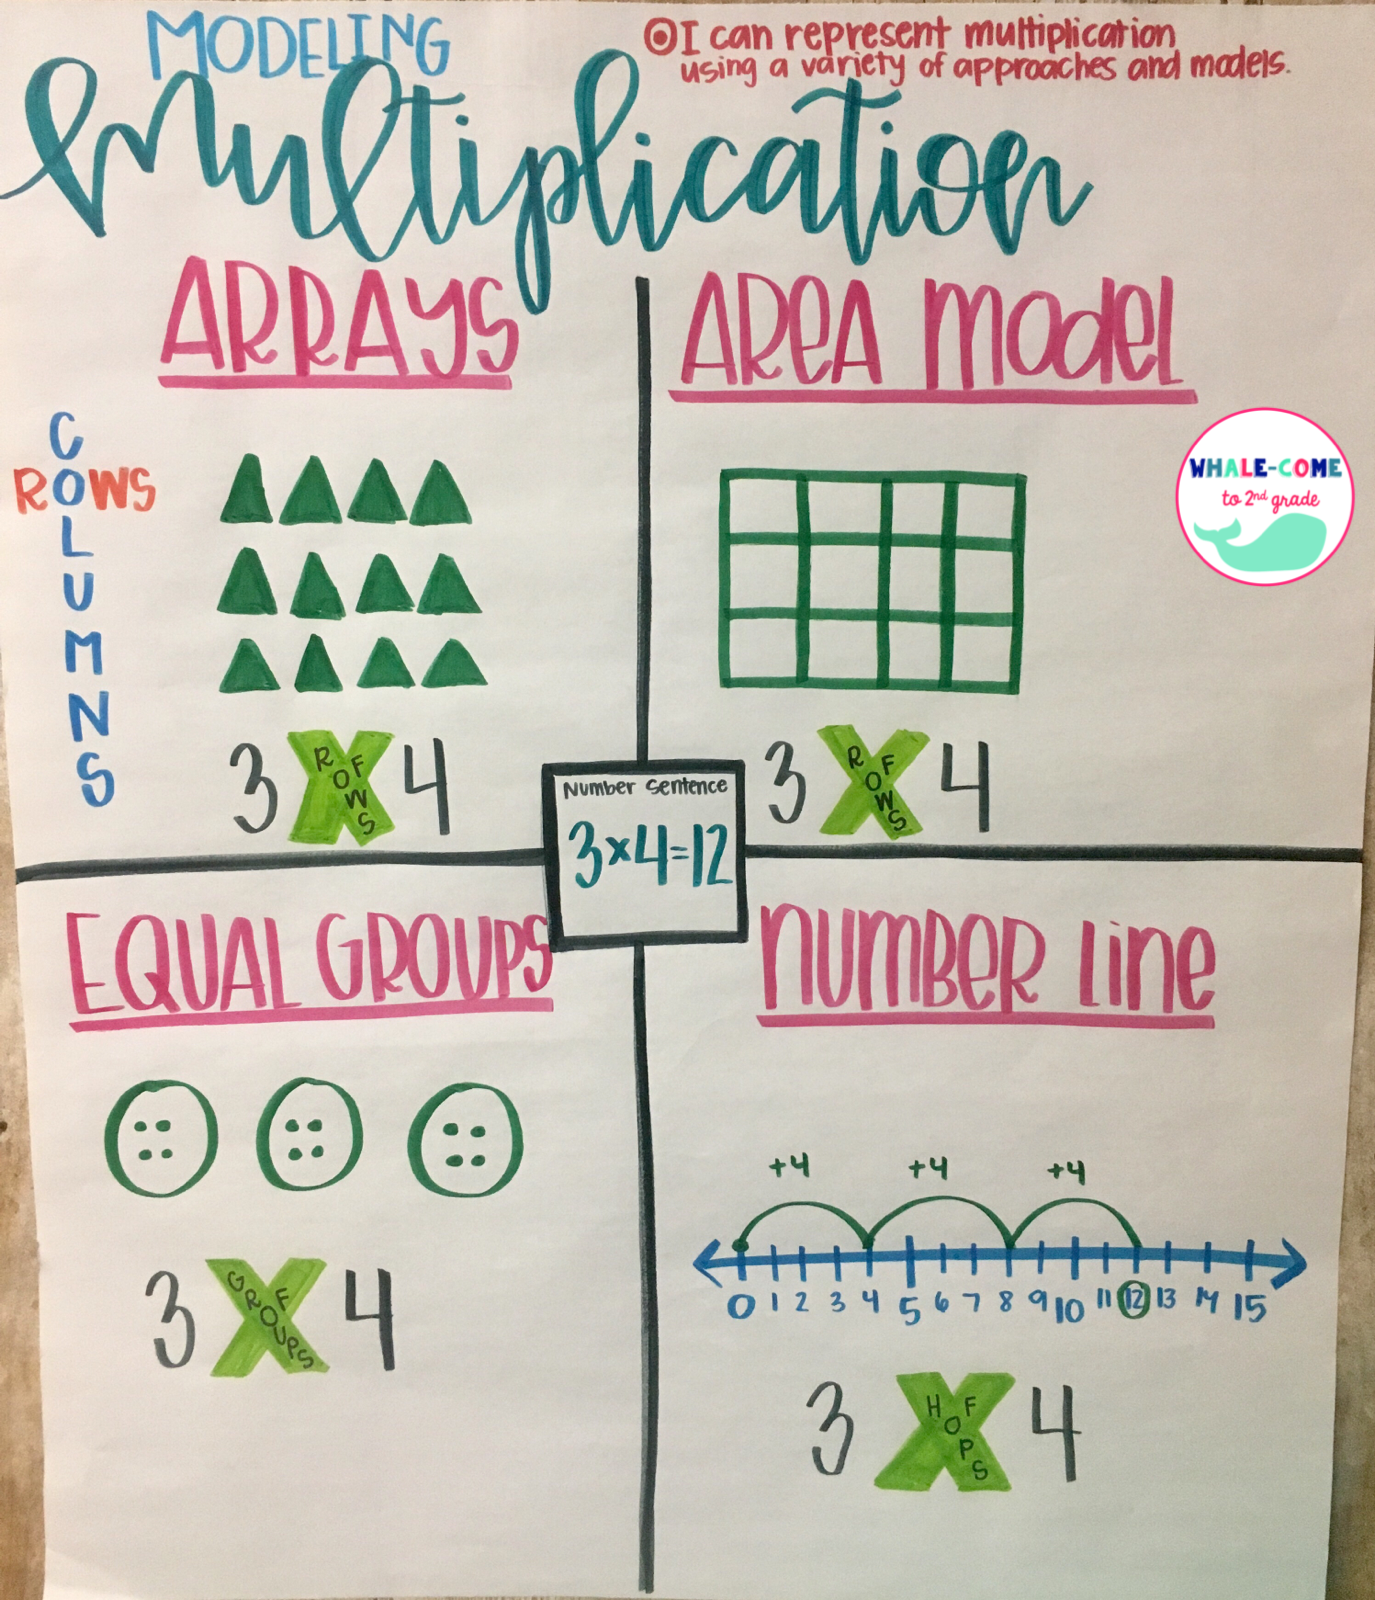 Modeling Multiplication Anchor Chart Arrays Areamodel